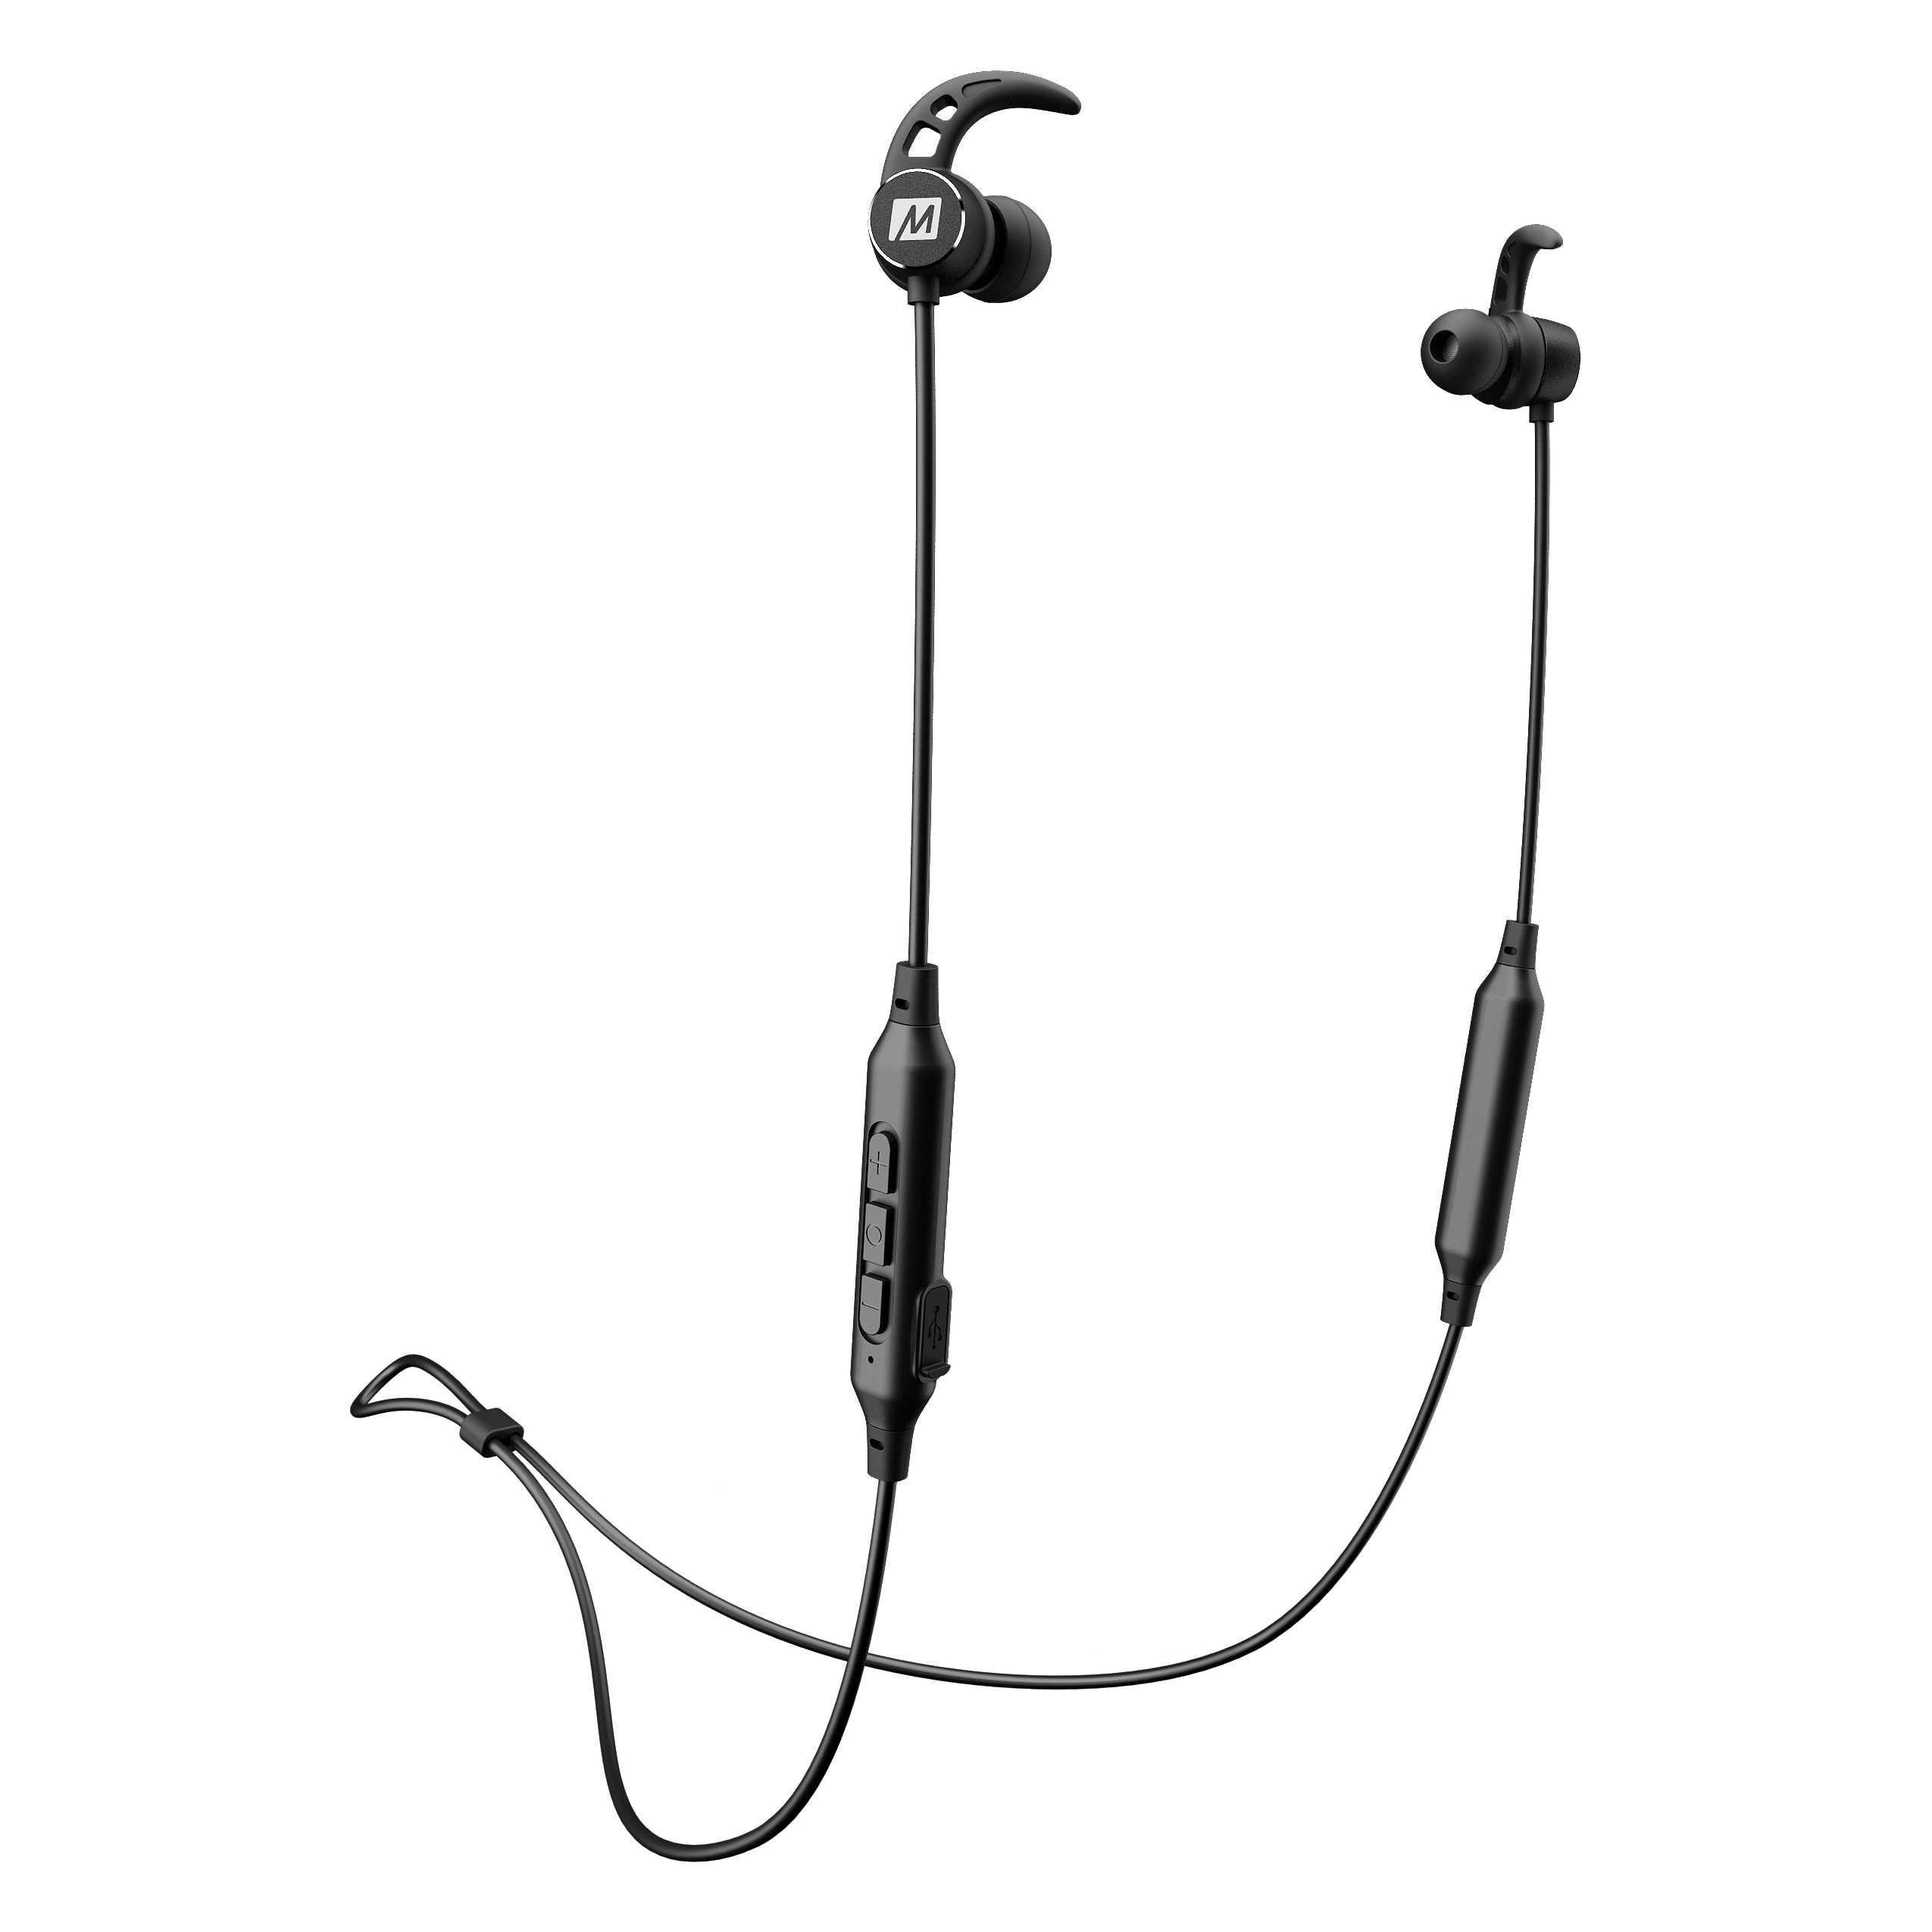 MEE audio M9B Bluetooth Wireless In-Ear Headphones (2018 Version)